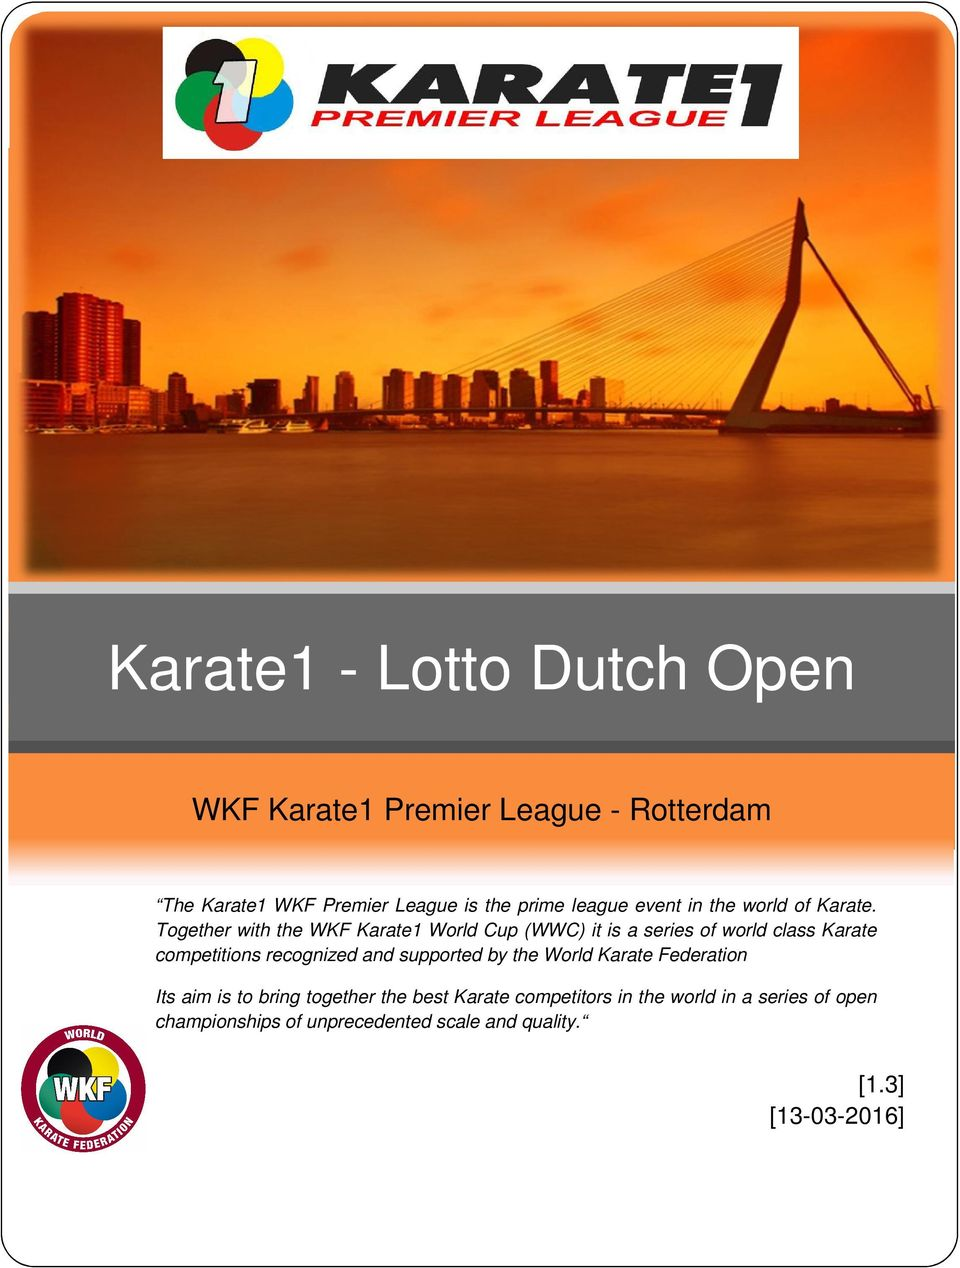 Together with the WKF Karate1 World Cup (WWC) it is a series of world class Karate competitions recognized and